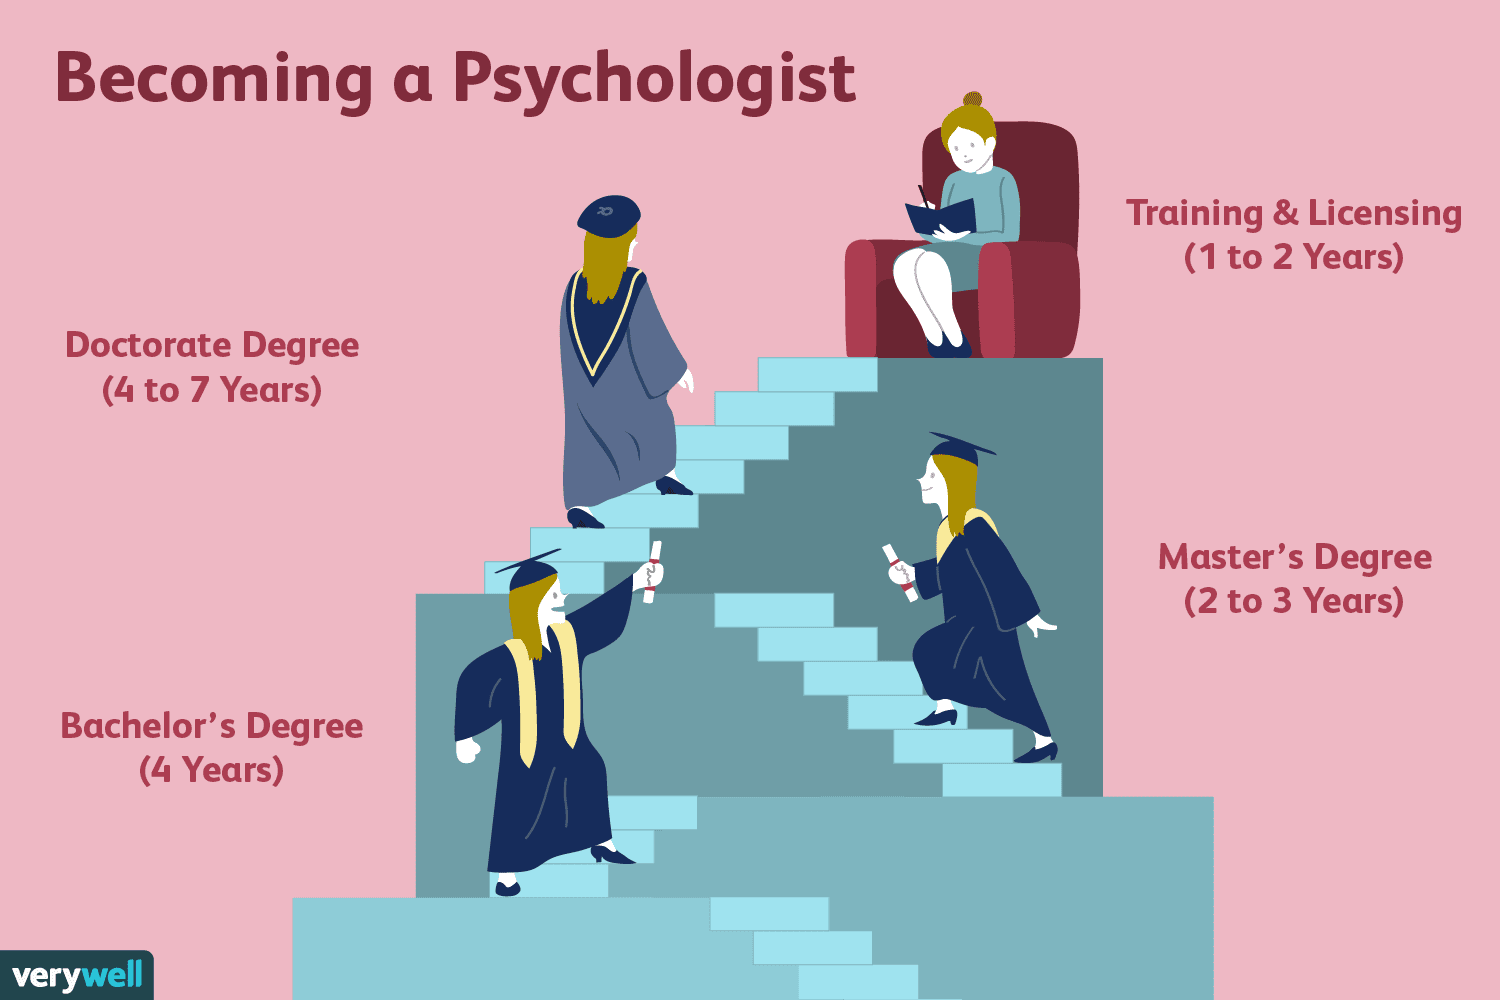 How Long Does It Take to Become a Psychologist?